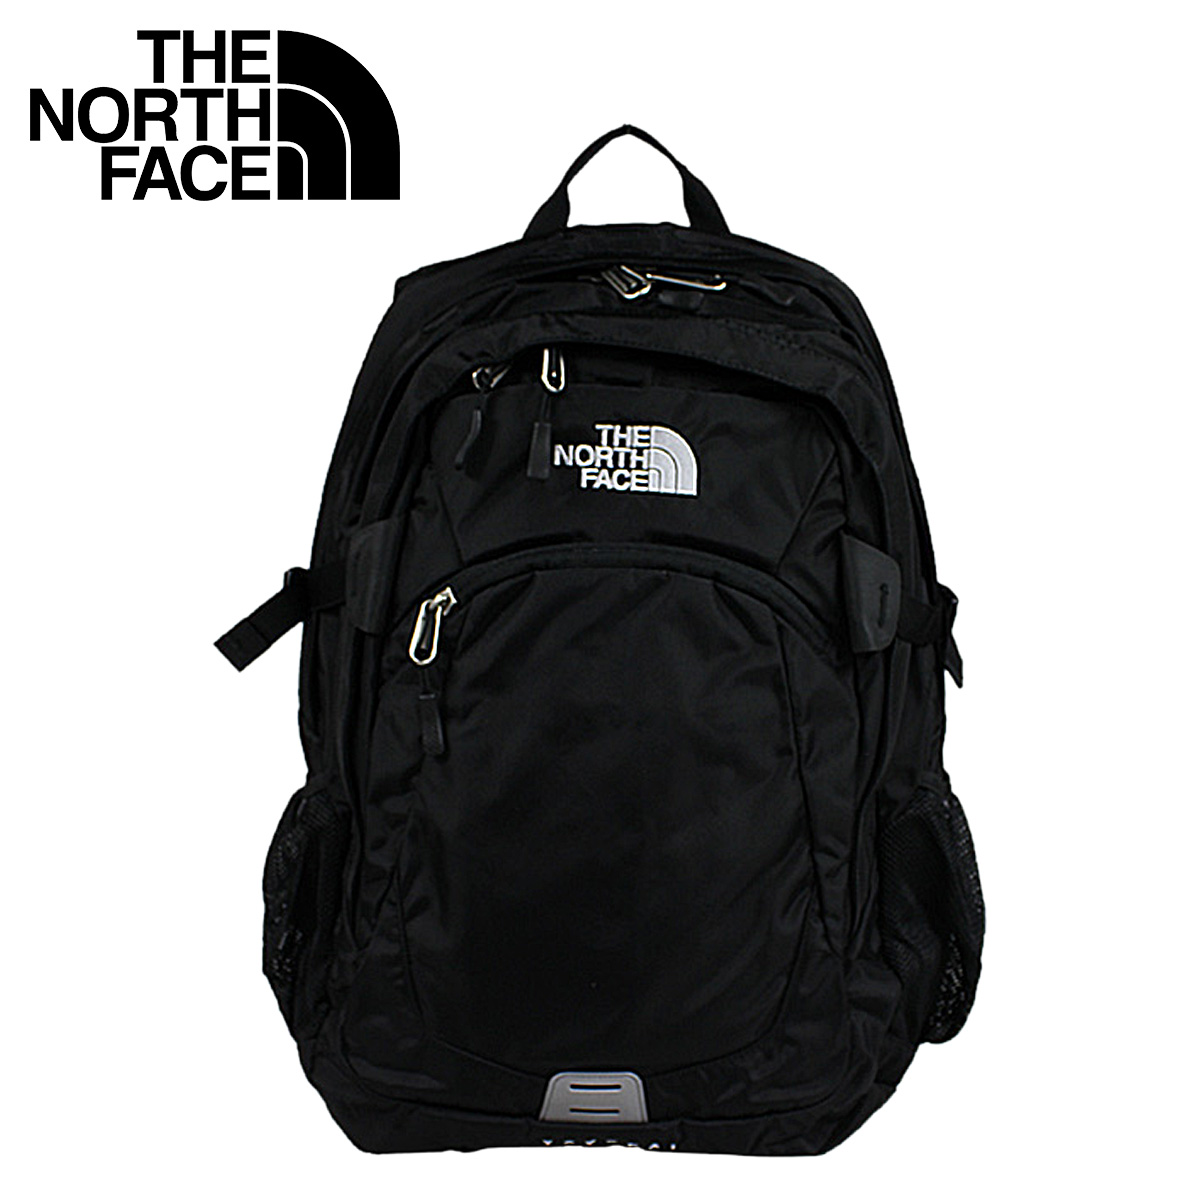 [SOLD OUT] the north face THE NORTH FACE Backpack Backpack [Black] YAVAPAI  BACKPACK mens A92Z [regular]